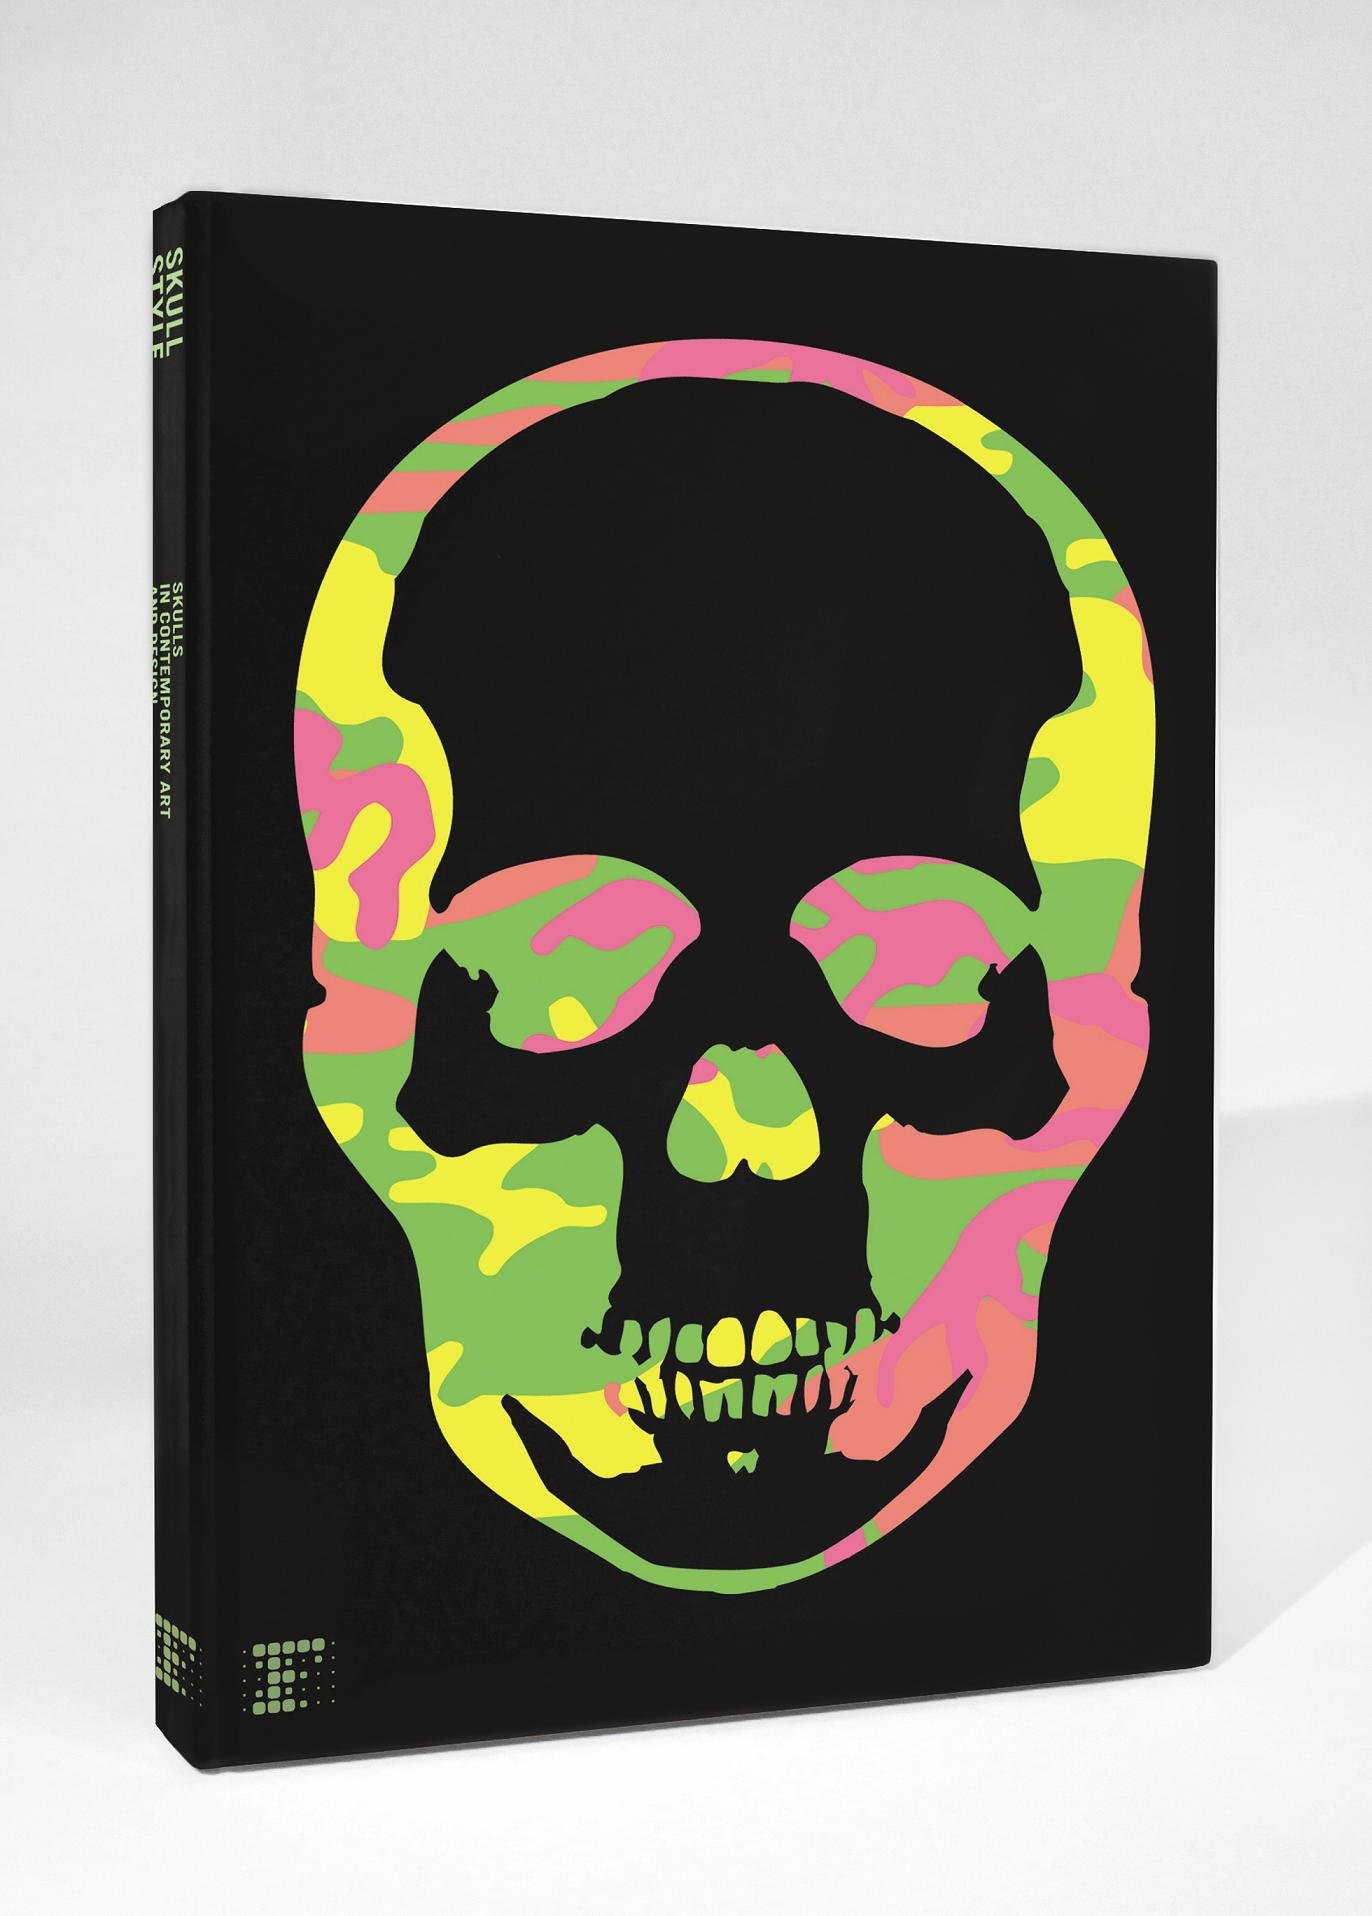 Skull Style Neon Camouflage Cover: Skulls in Contemporary Art and Design por Patrice Farameh